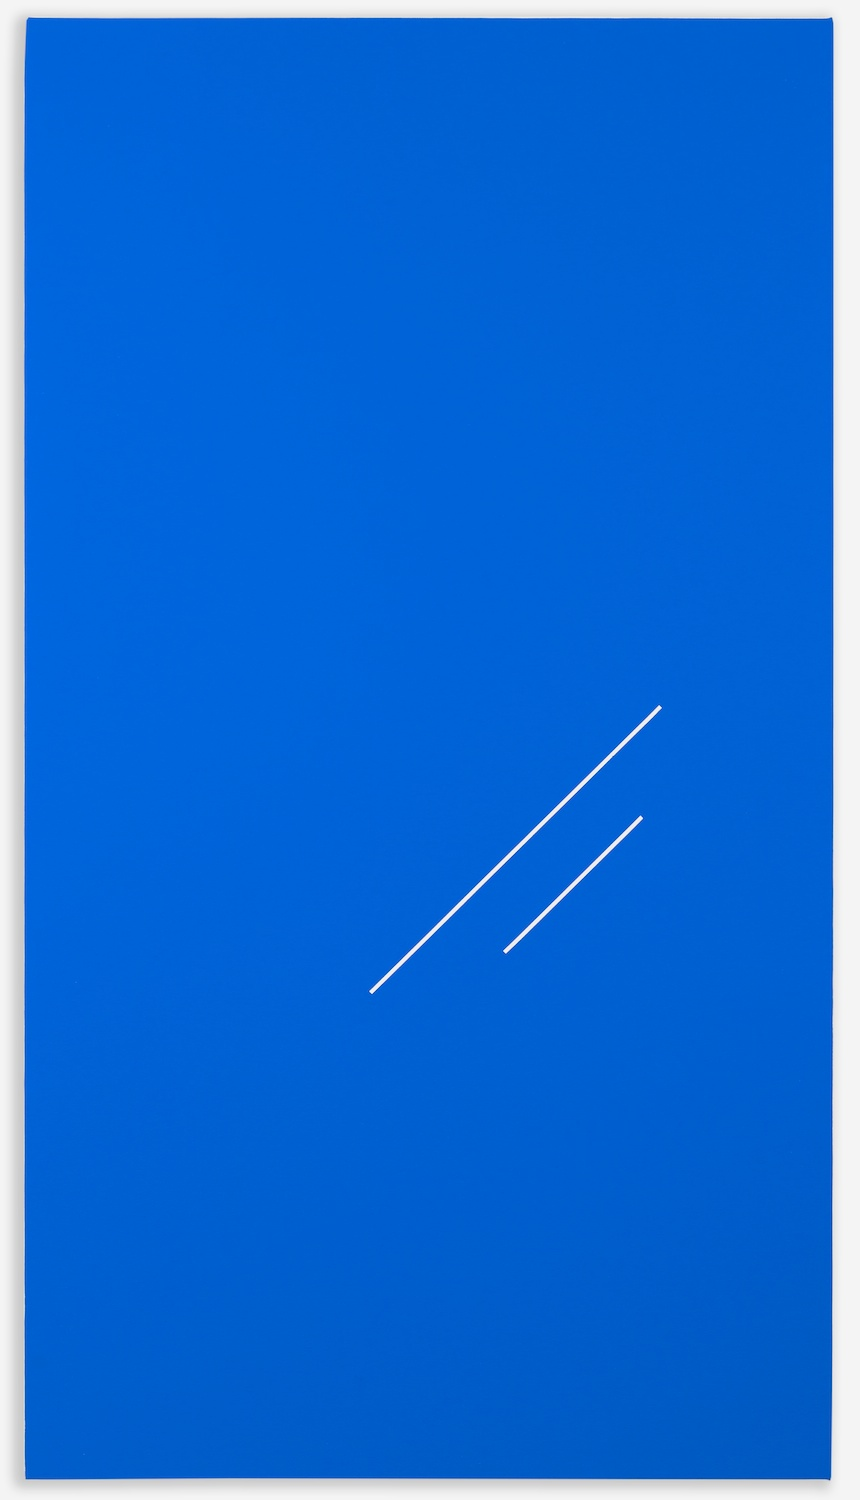 Paul Cowan  BCEAUSE THE SKY IS BULE  2013 Chroma-key blue paint on canvas  48h x 26w in  PC092